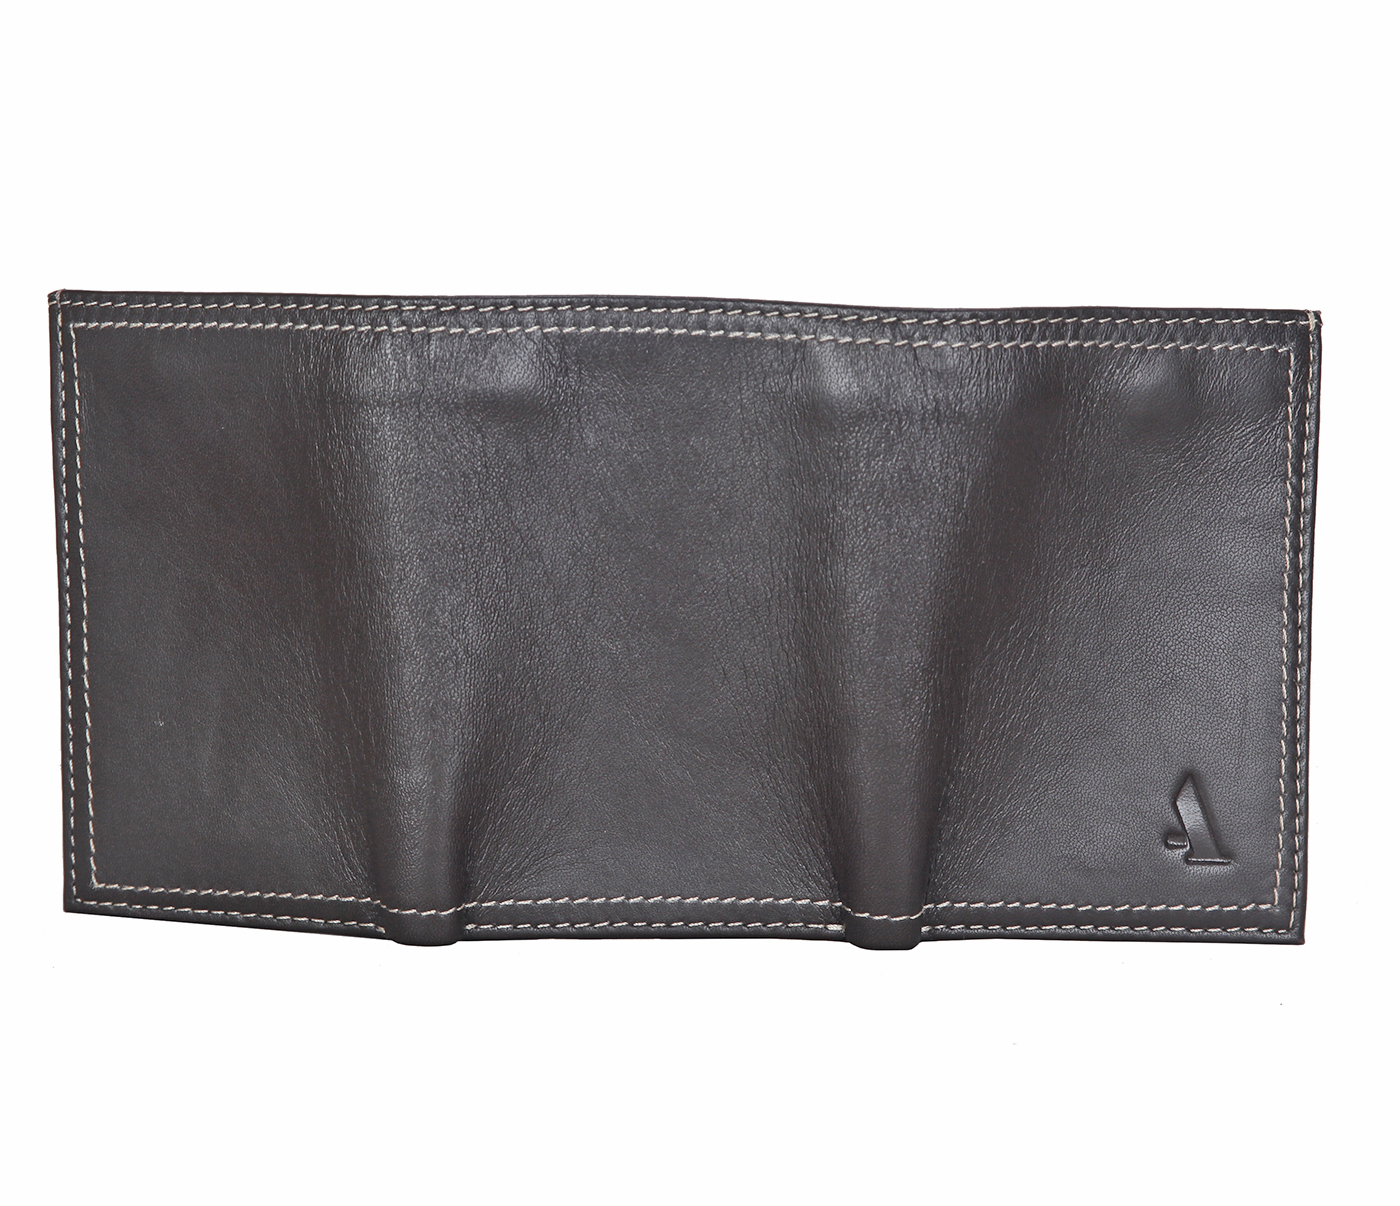 W282-Samuel -Mens's trifold wallet with photo id in Genuine Leather - Brown.